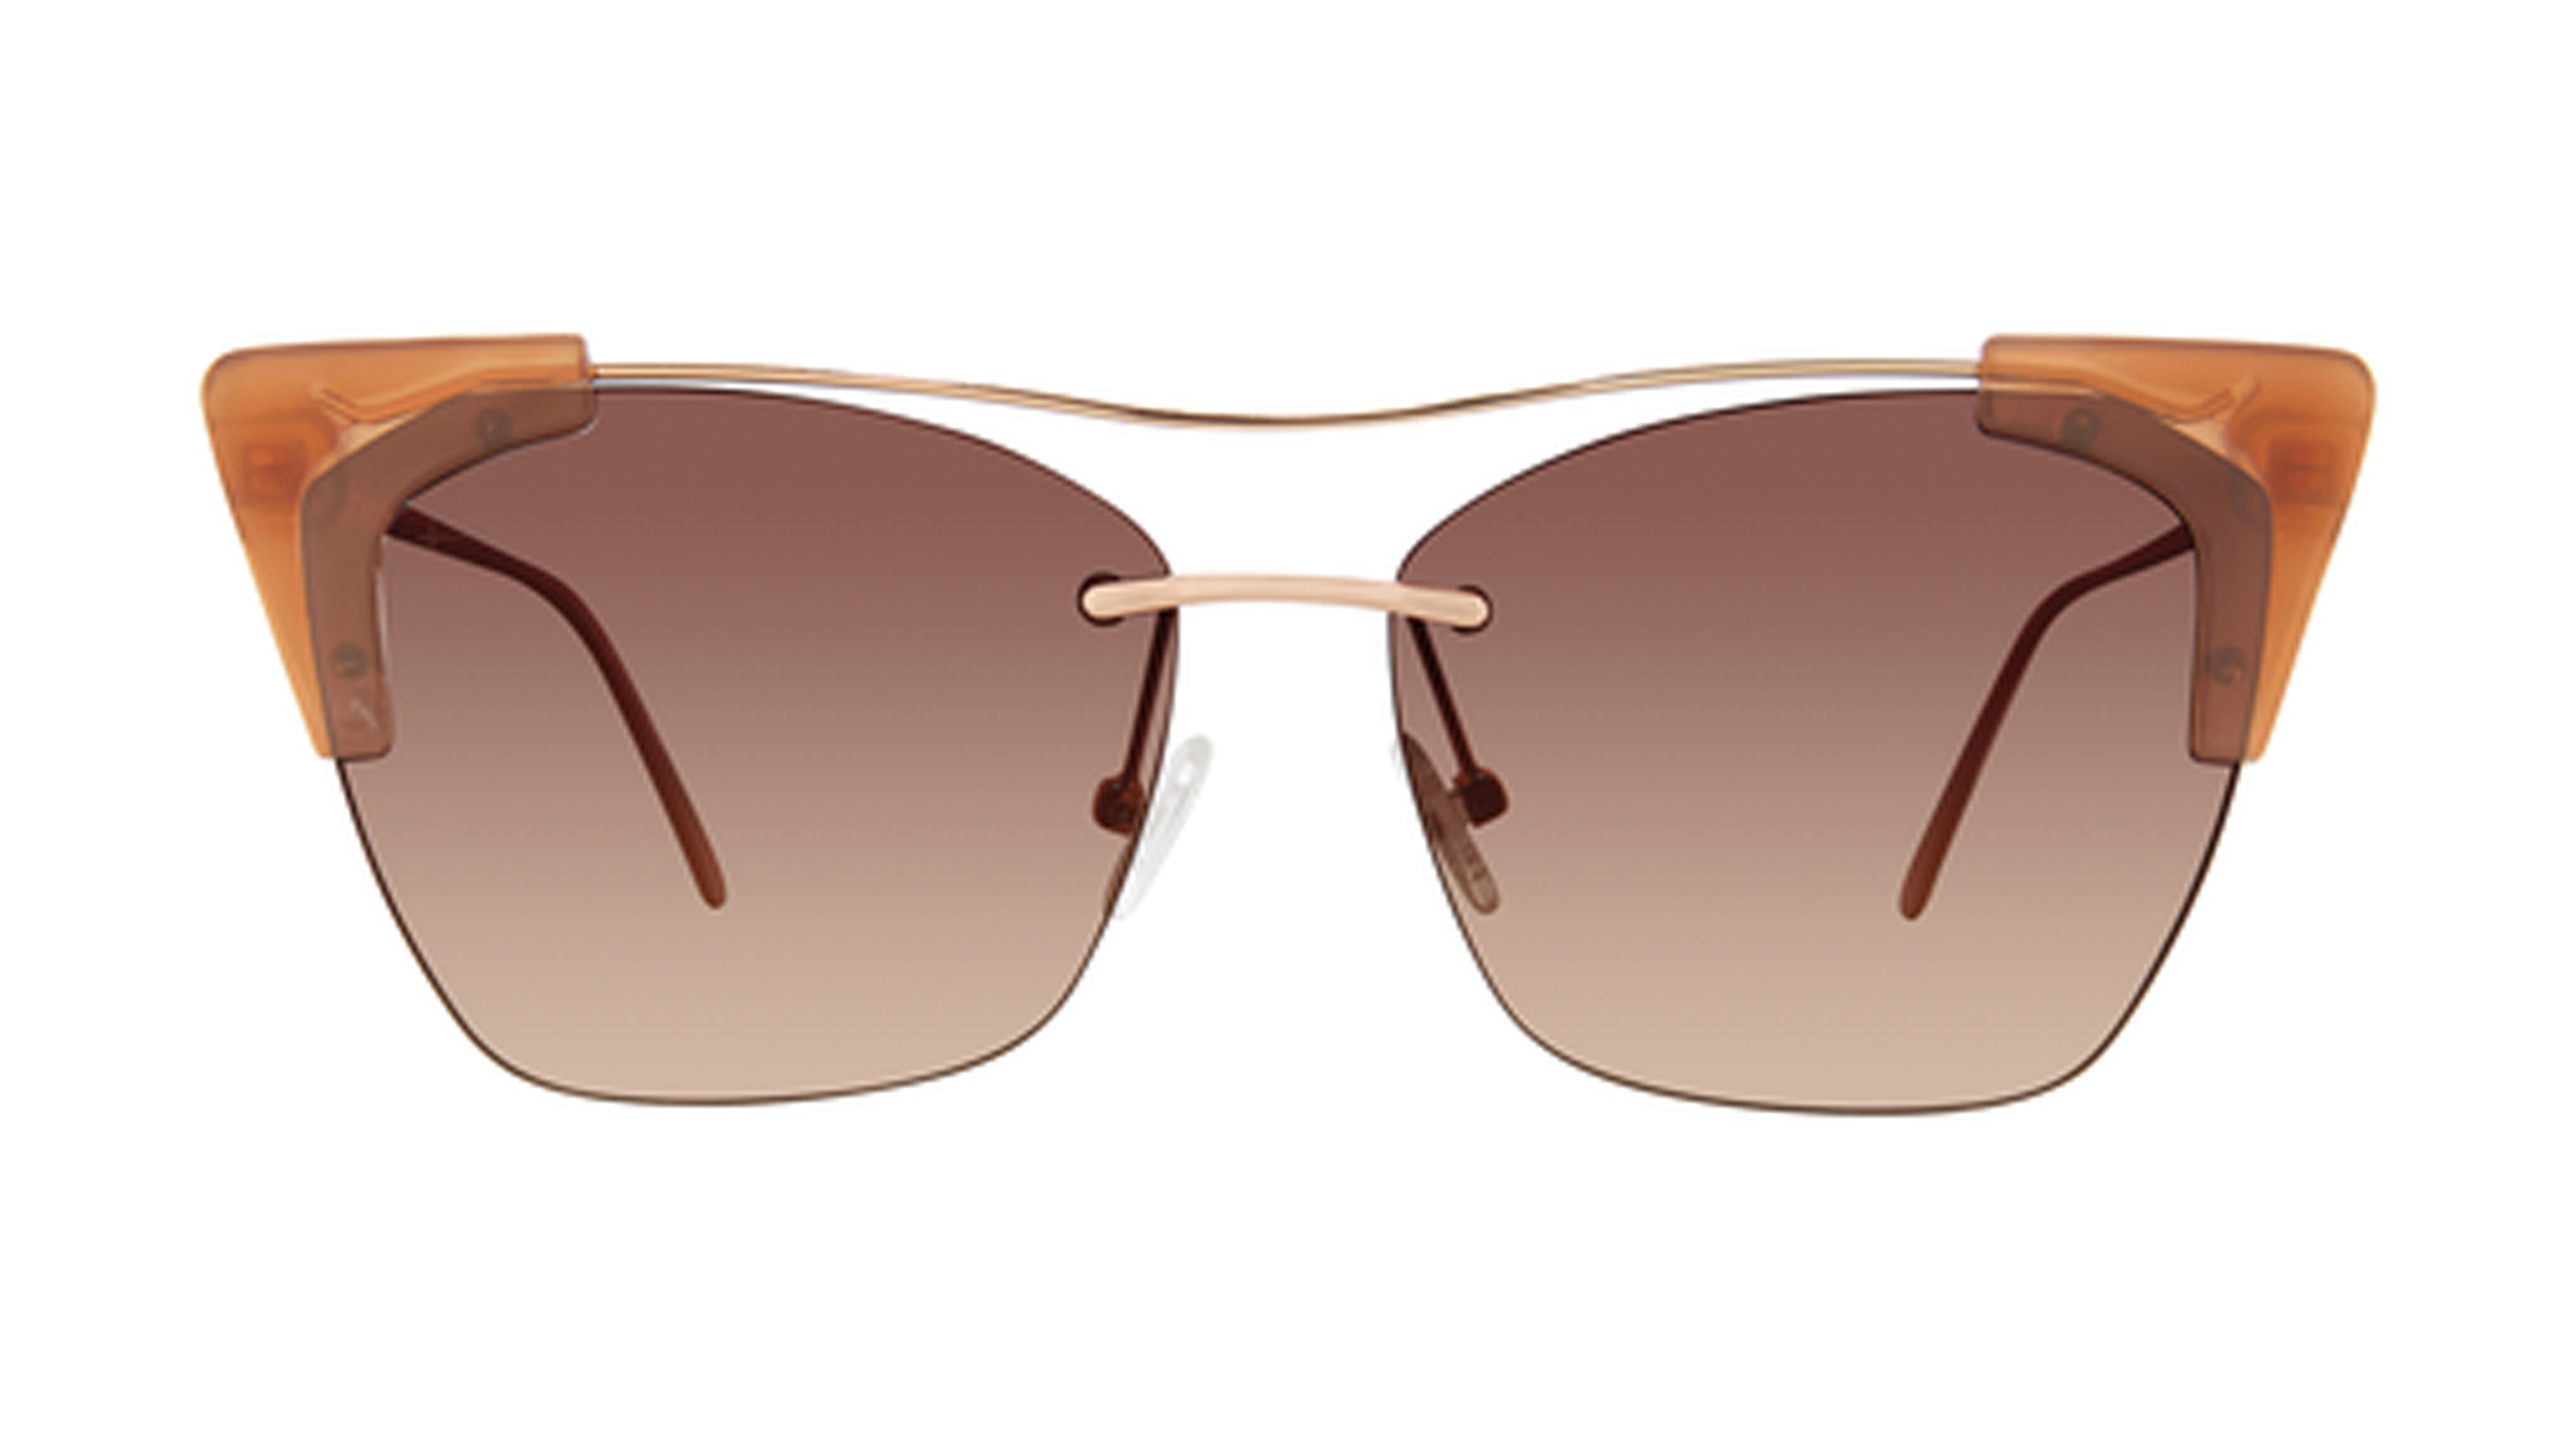 0818893024139-front-prive-revaux-sonnenbrille-prive-revaux-the-mads-nude-quarter